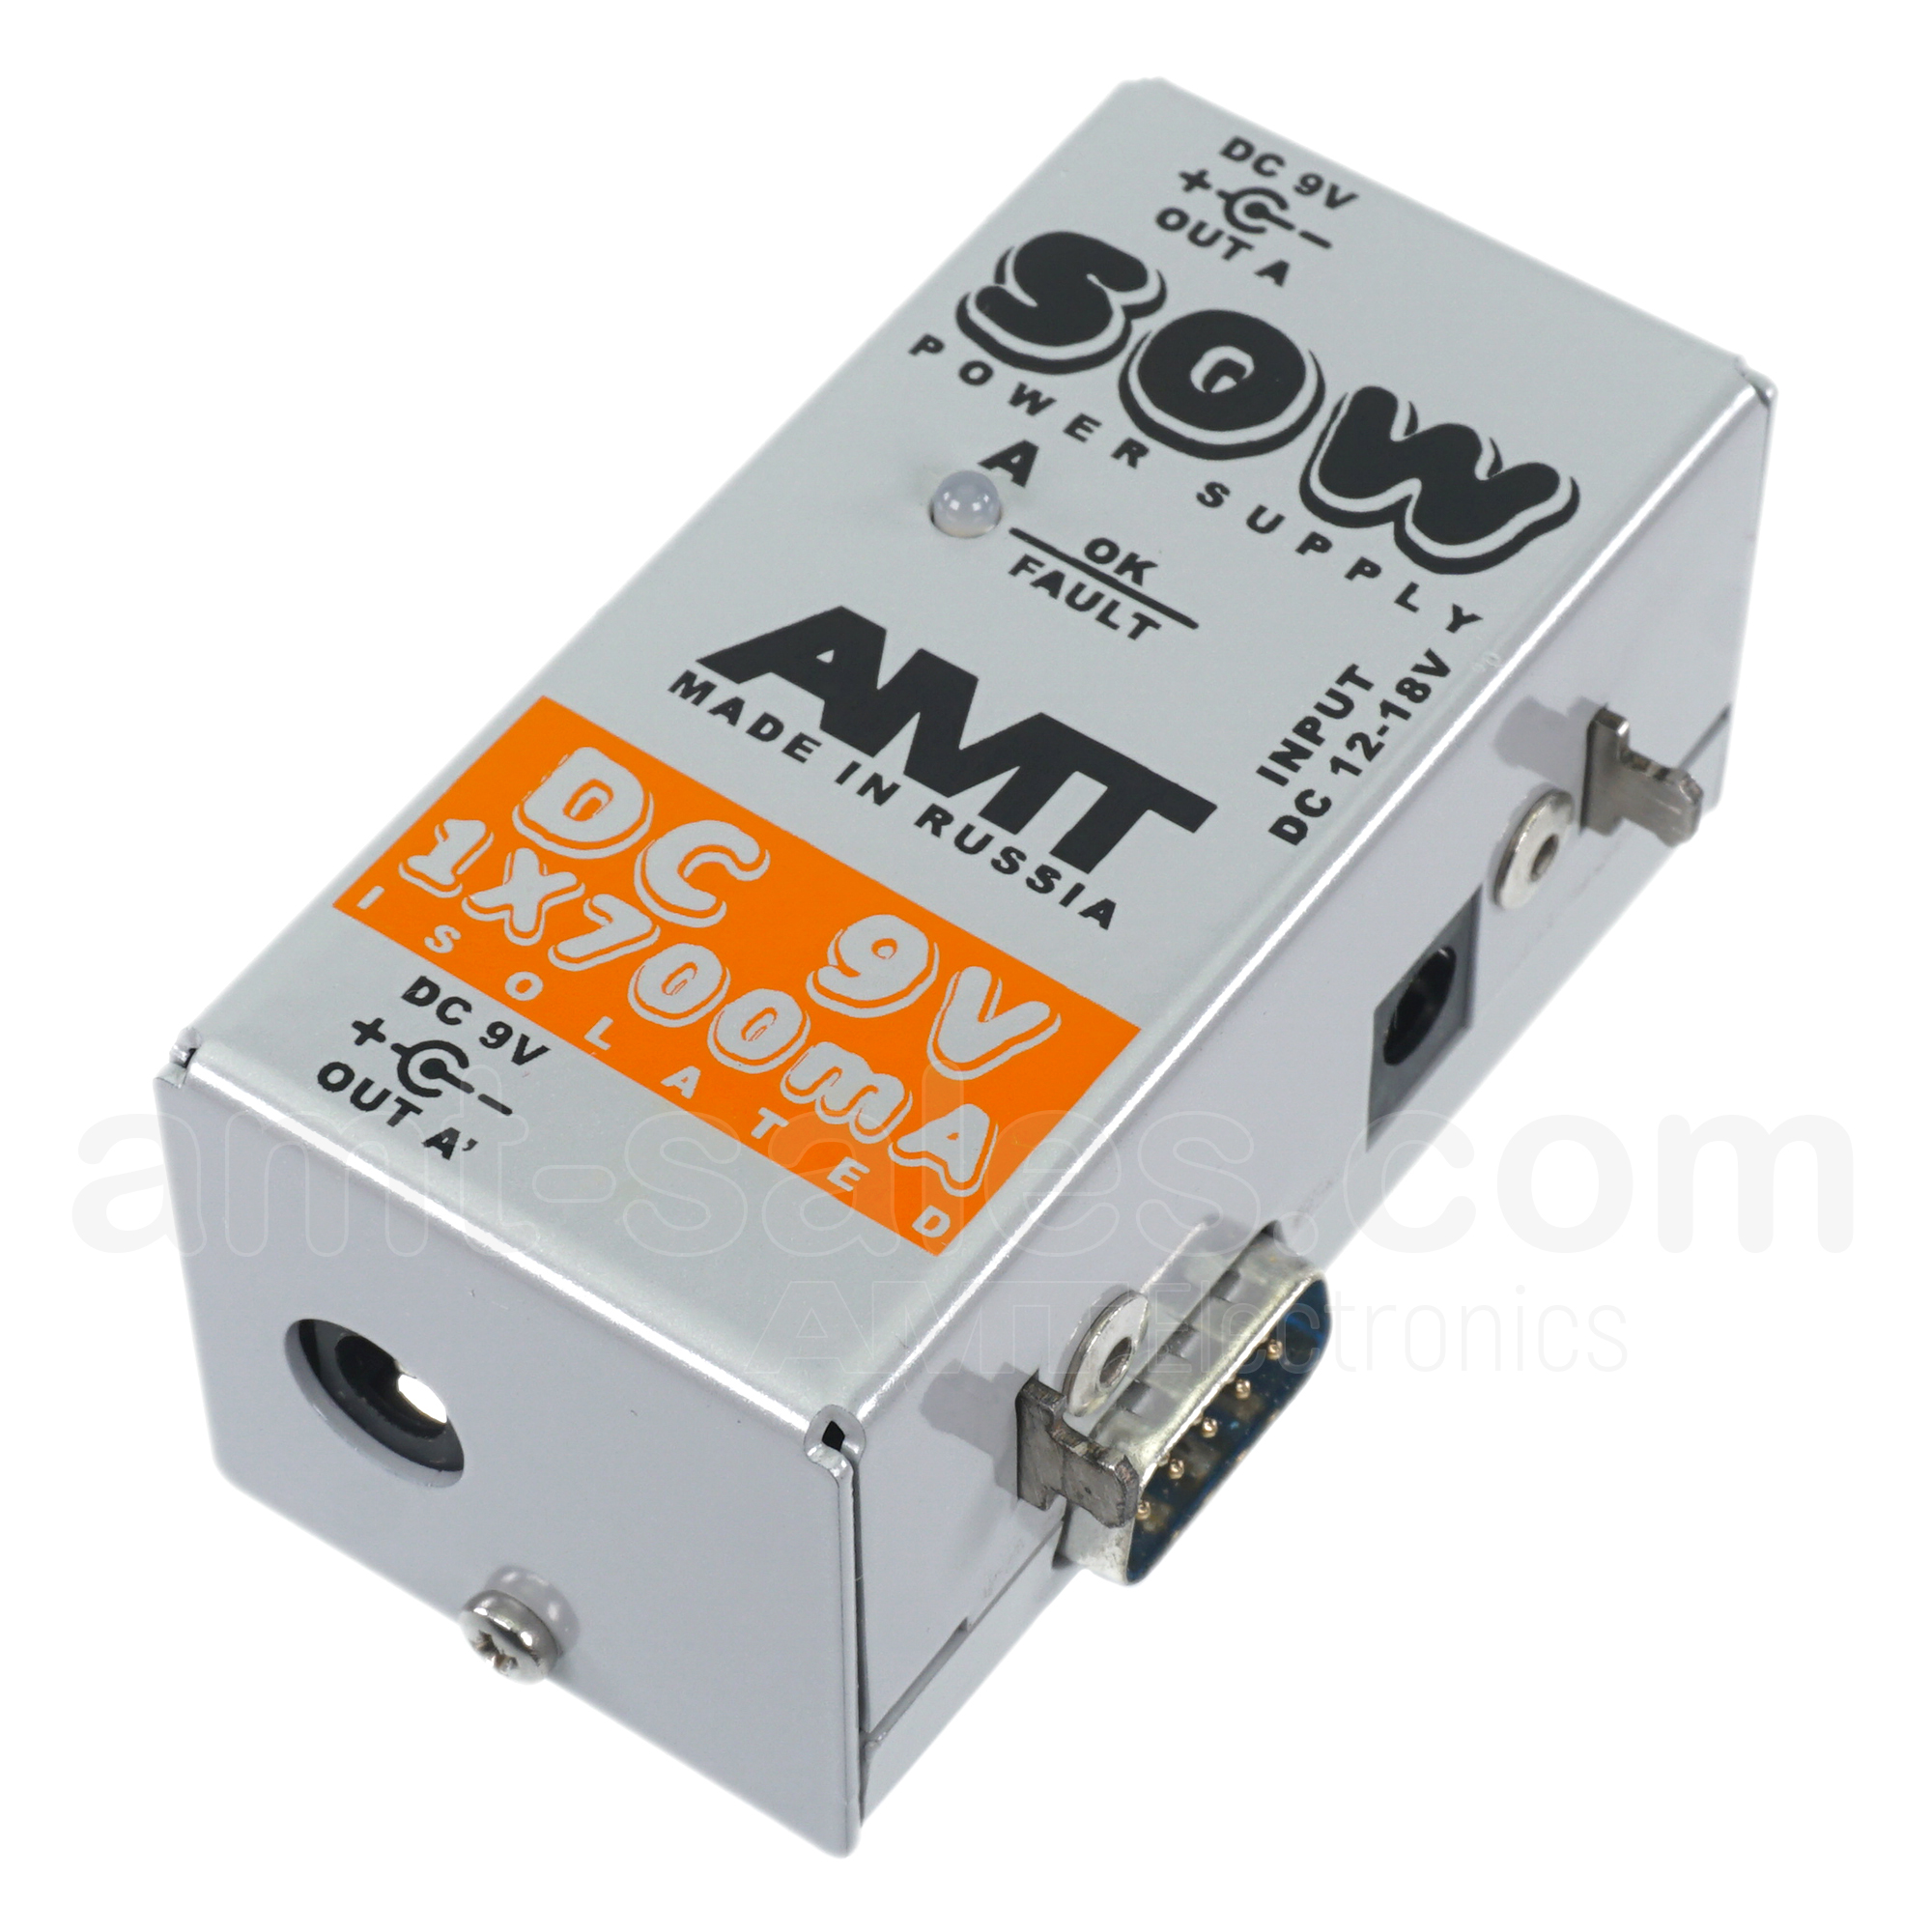 AMT SOW PS DC-9V 1x700mA - power supply module